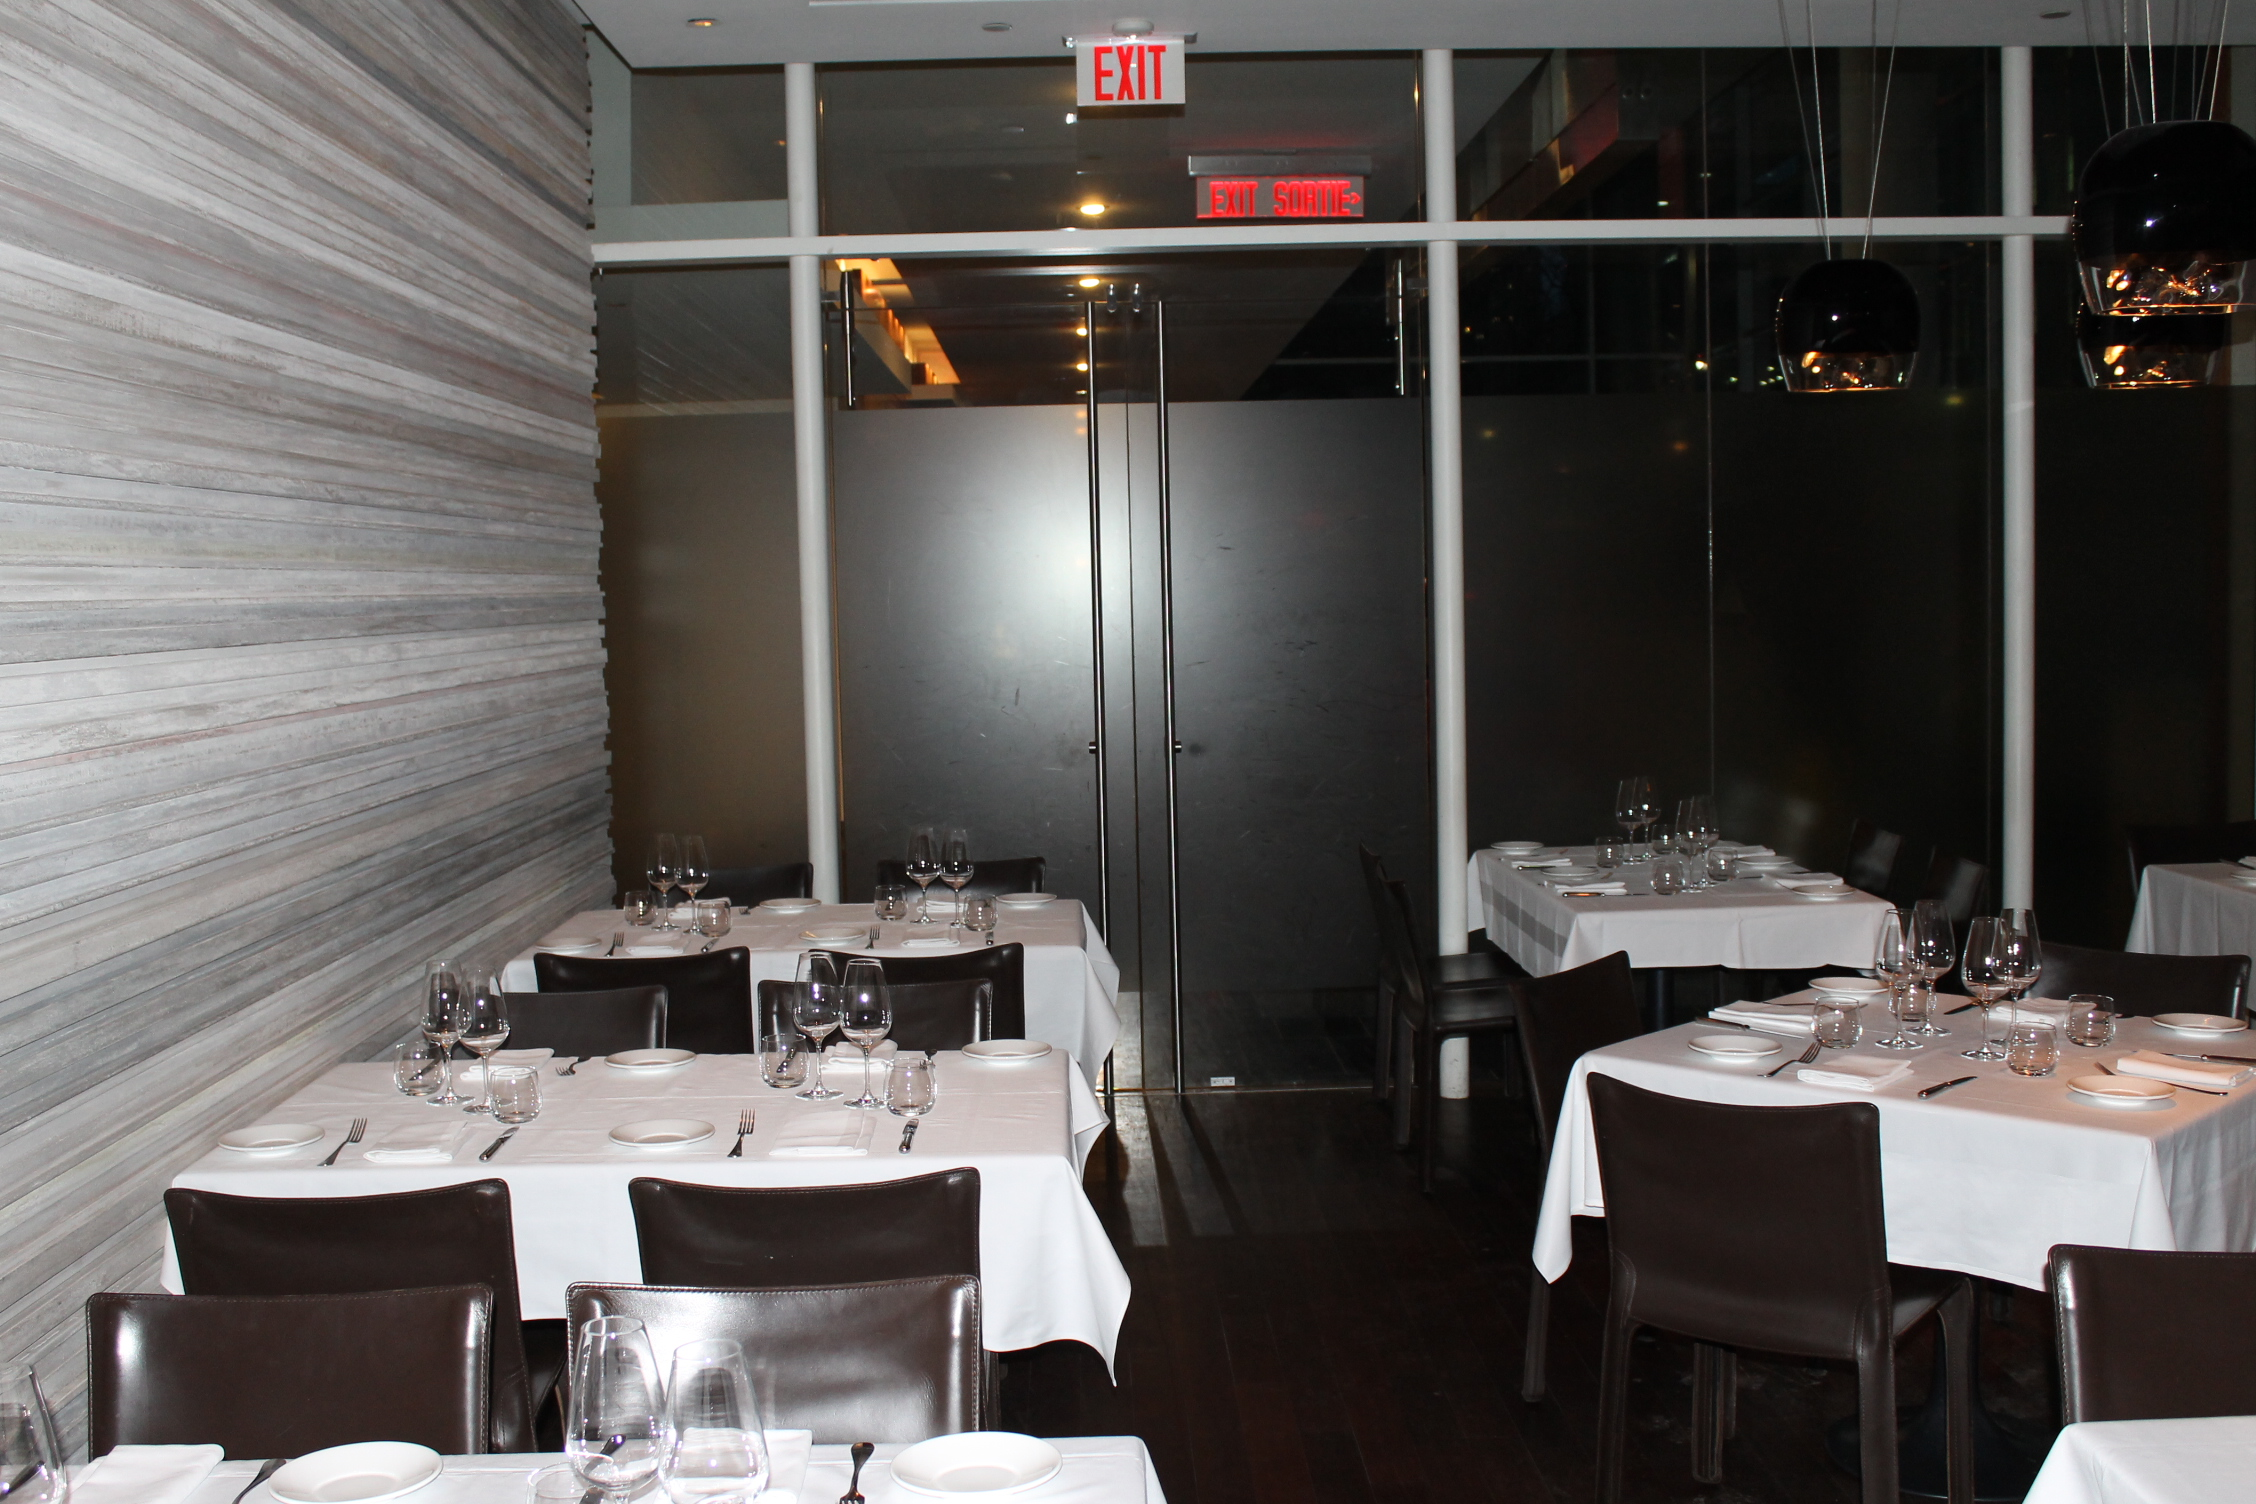 Image of accessible interior of restaurant.